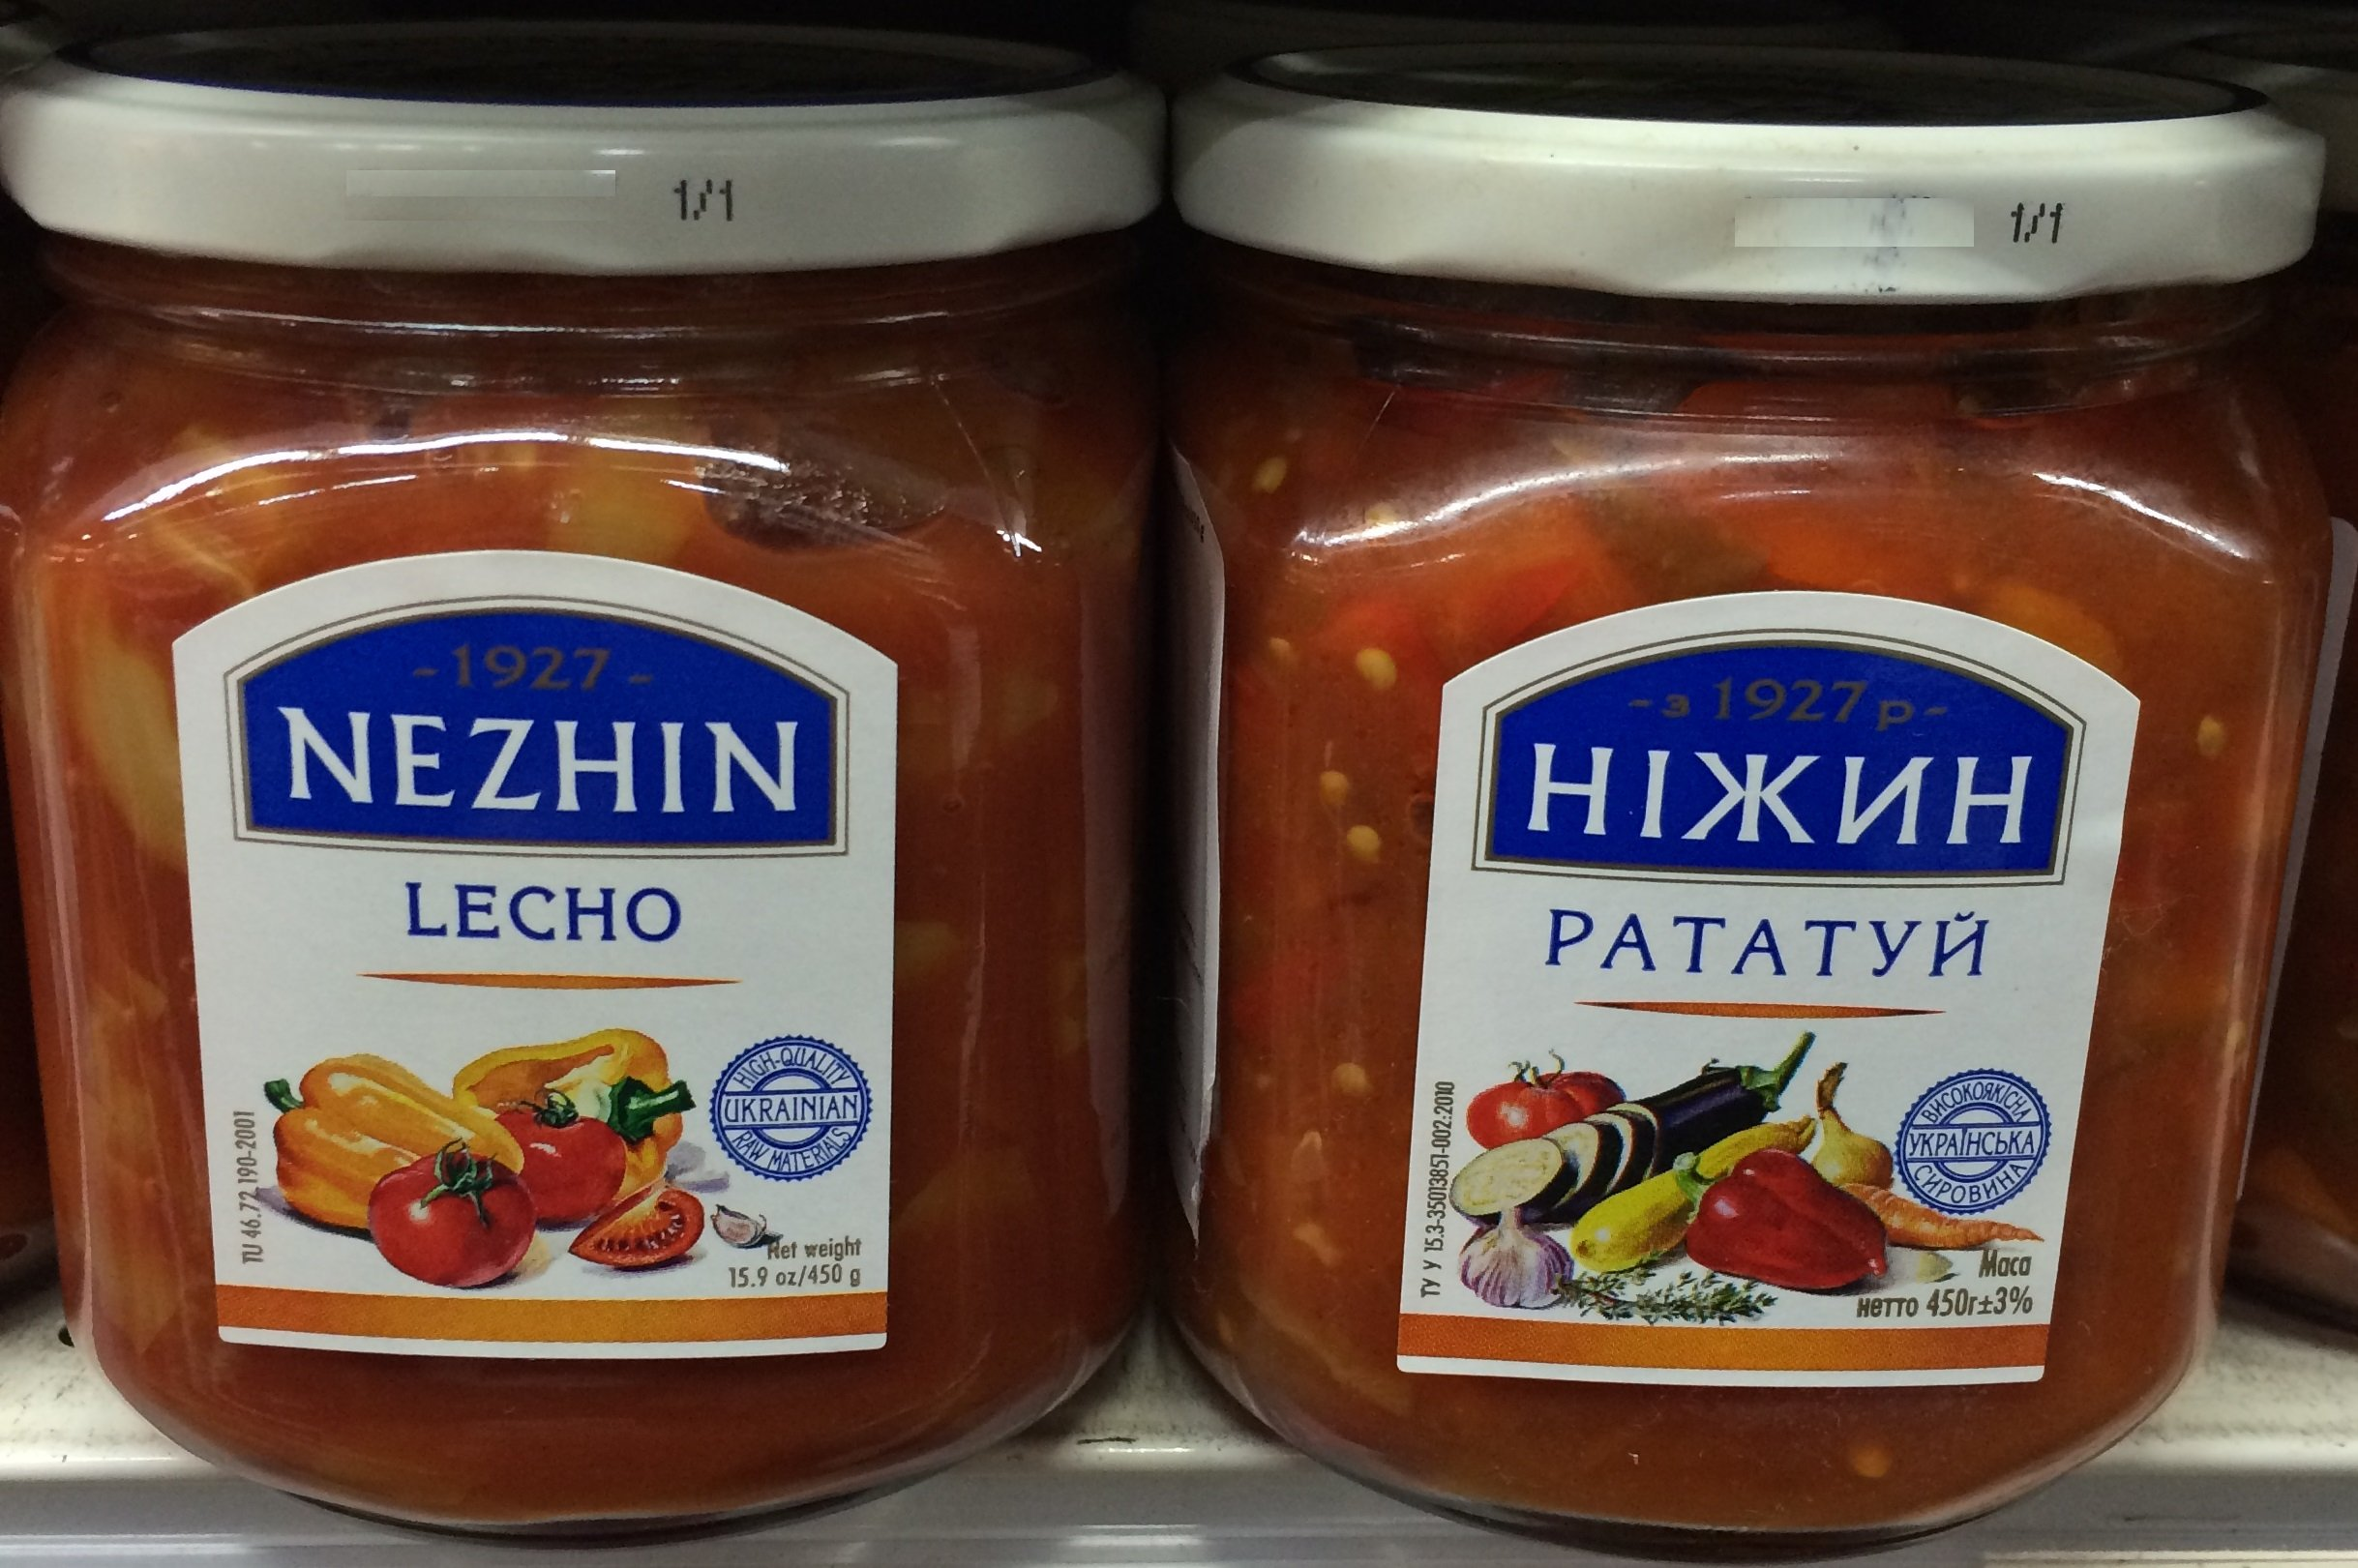 Ukrainian Lecho and Ratatouille (Pack of 2) 15.9oz / 450g